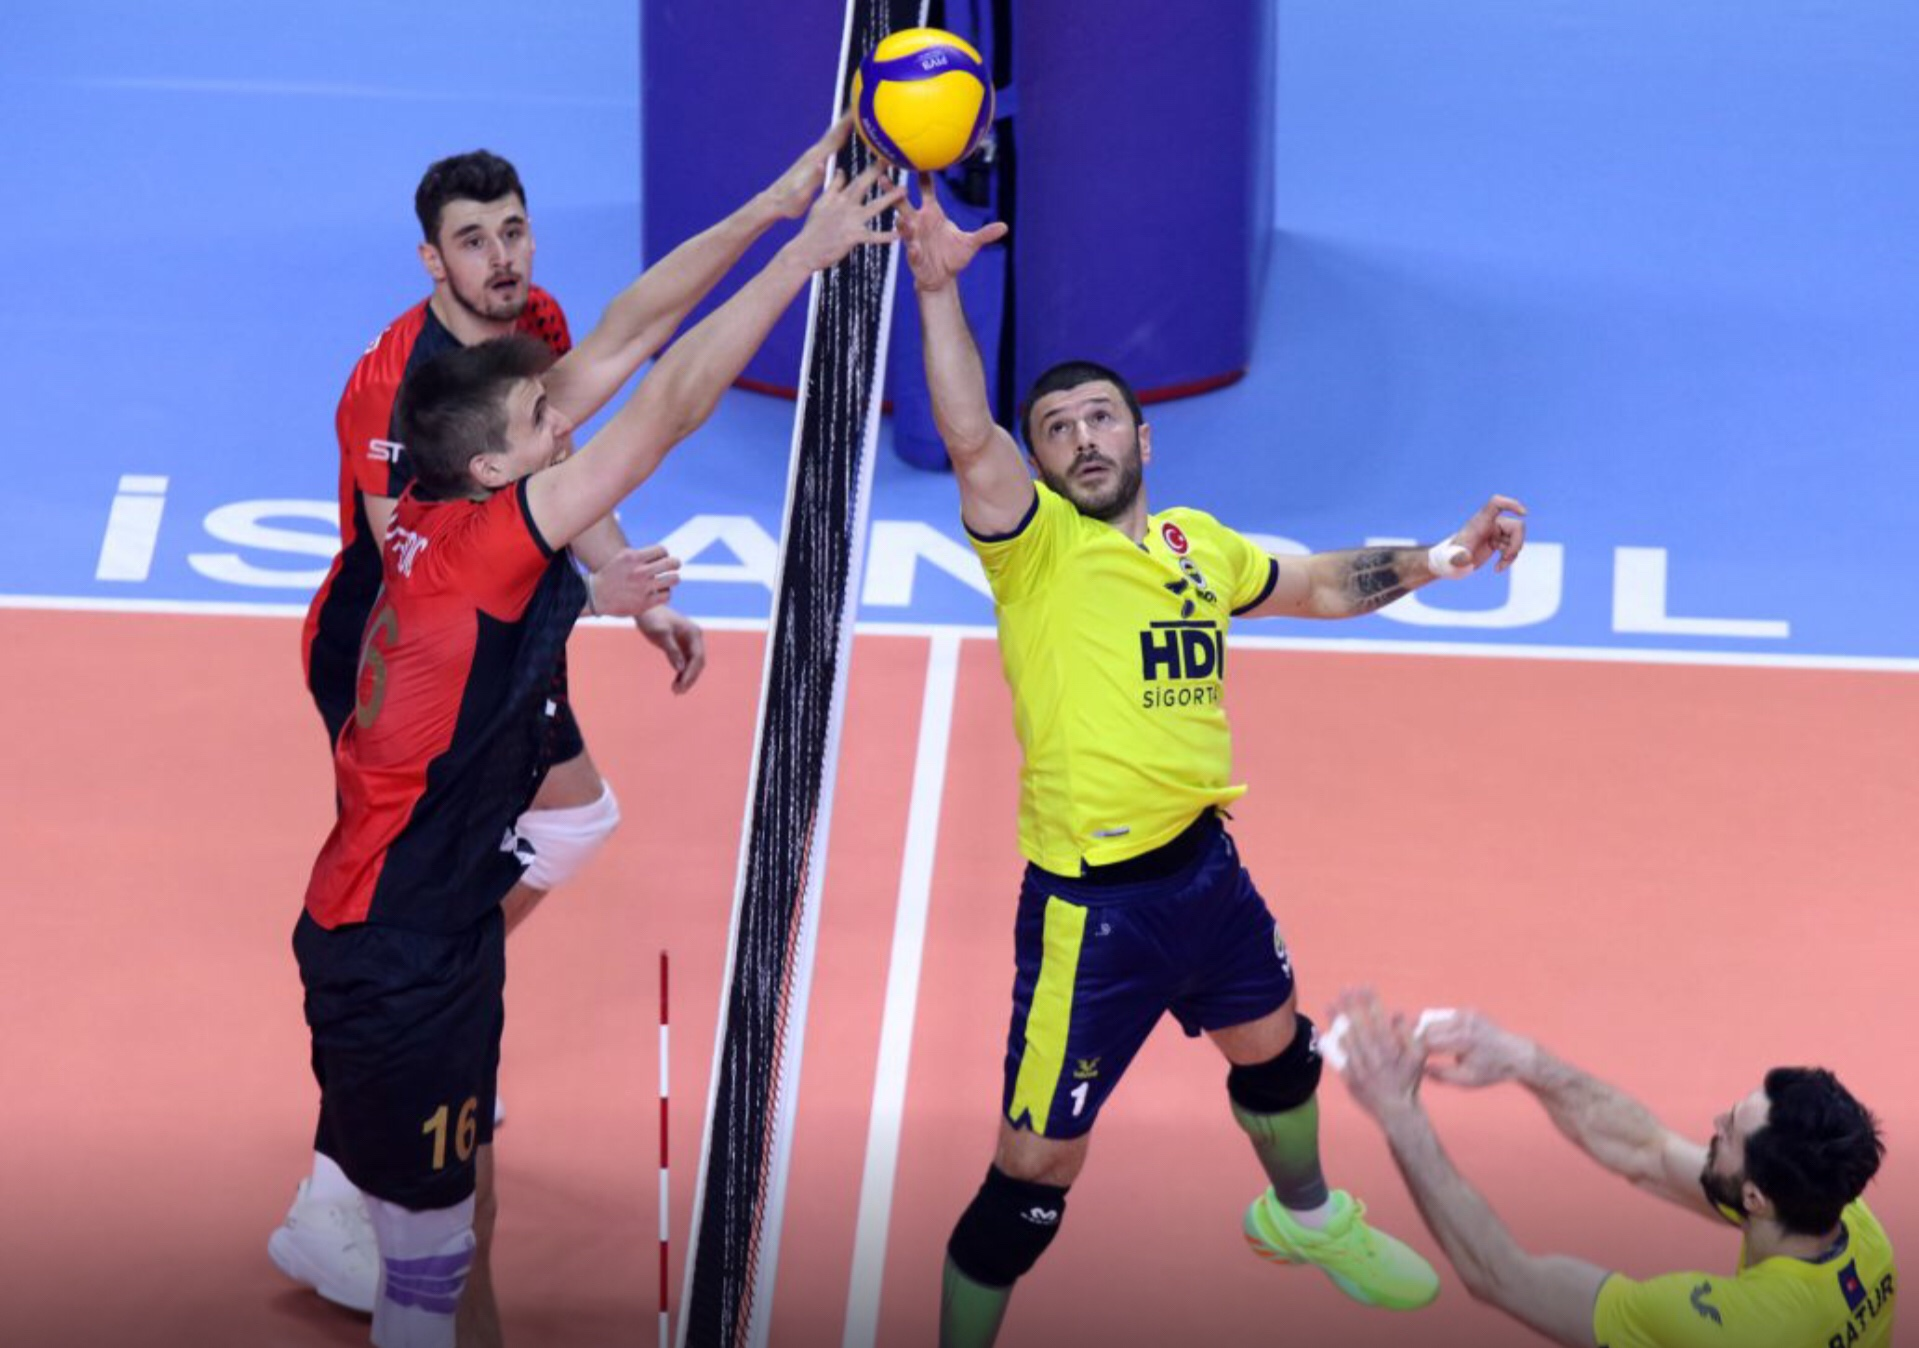 Turkey: Fenerbahce returns to the field after COVID, but loses against Spor Toto